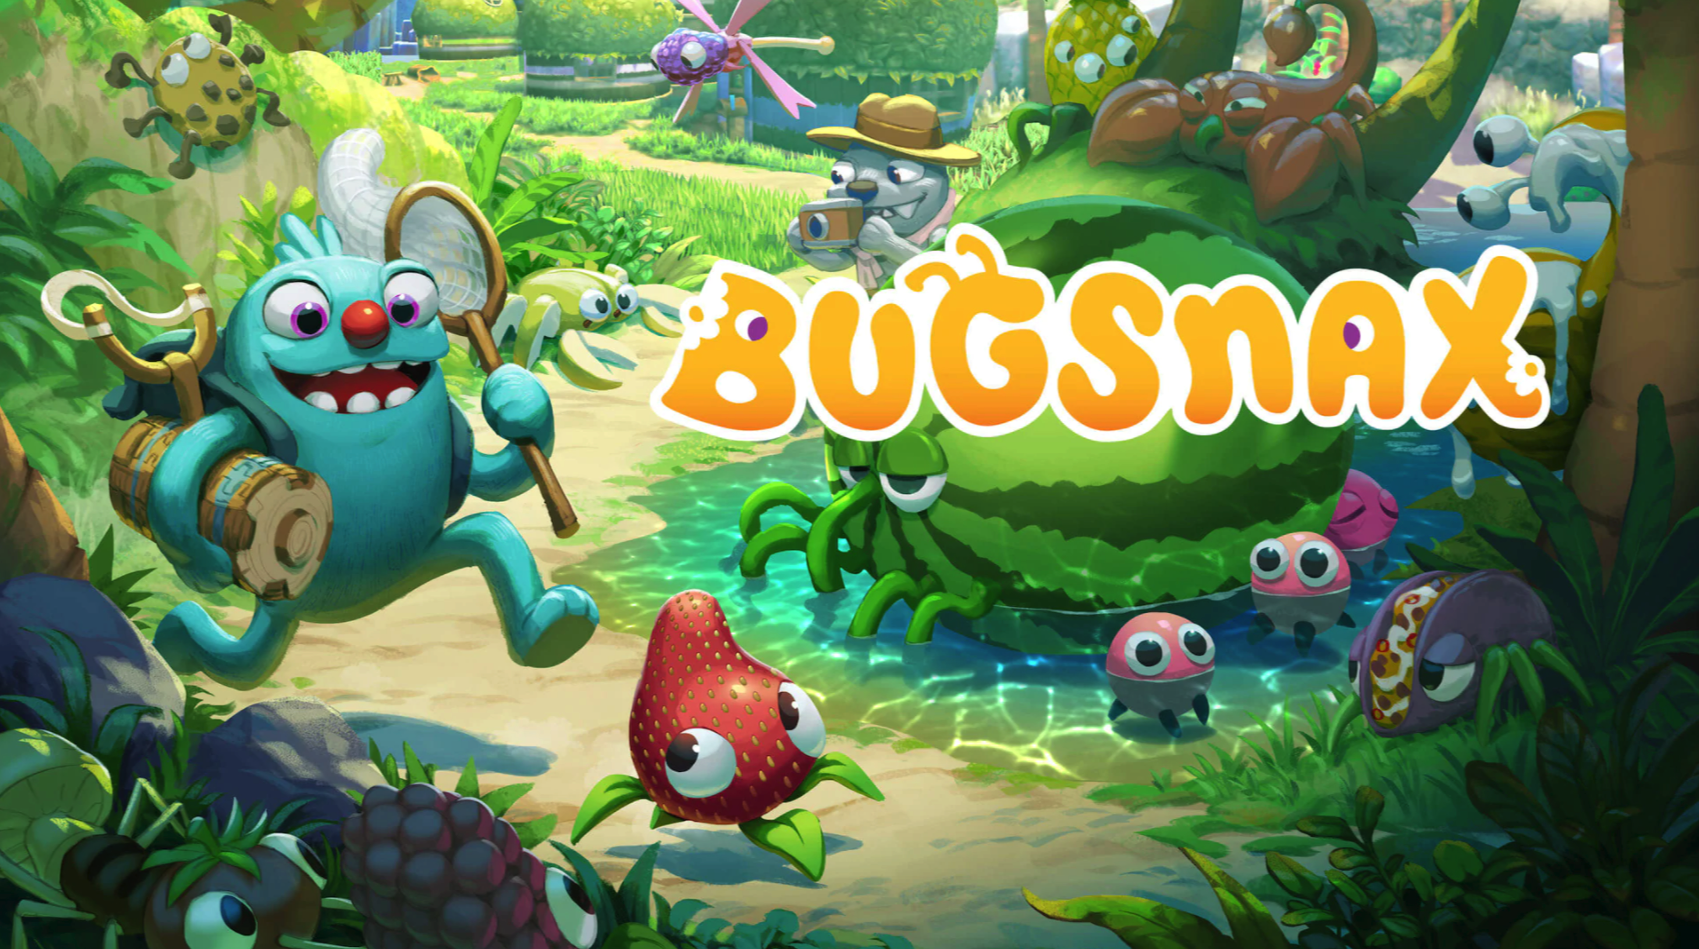 A grumpus (character in the game) running and trying to catch a strawberry with legs. The title BUGSNAX sits on top of the other creatures that are around, various food pun animals.